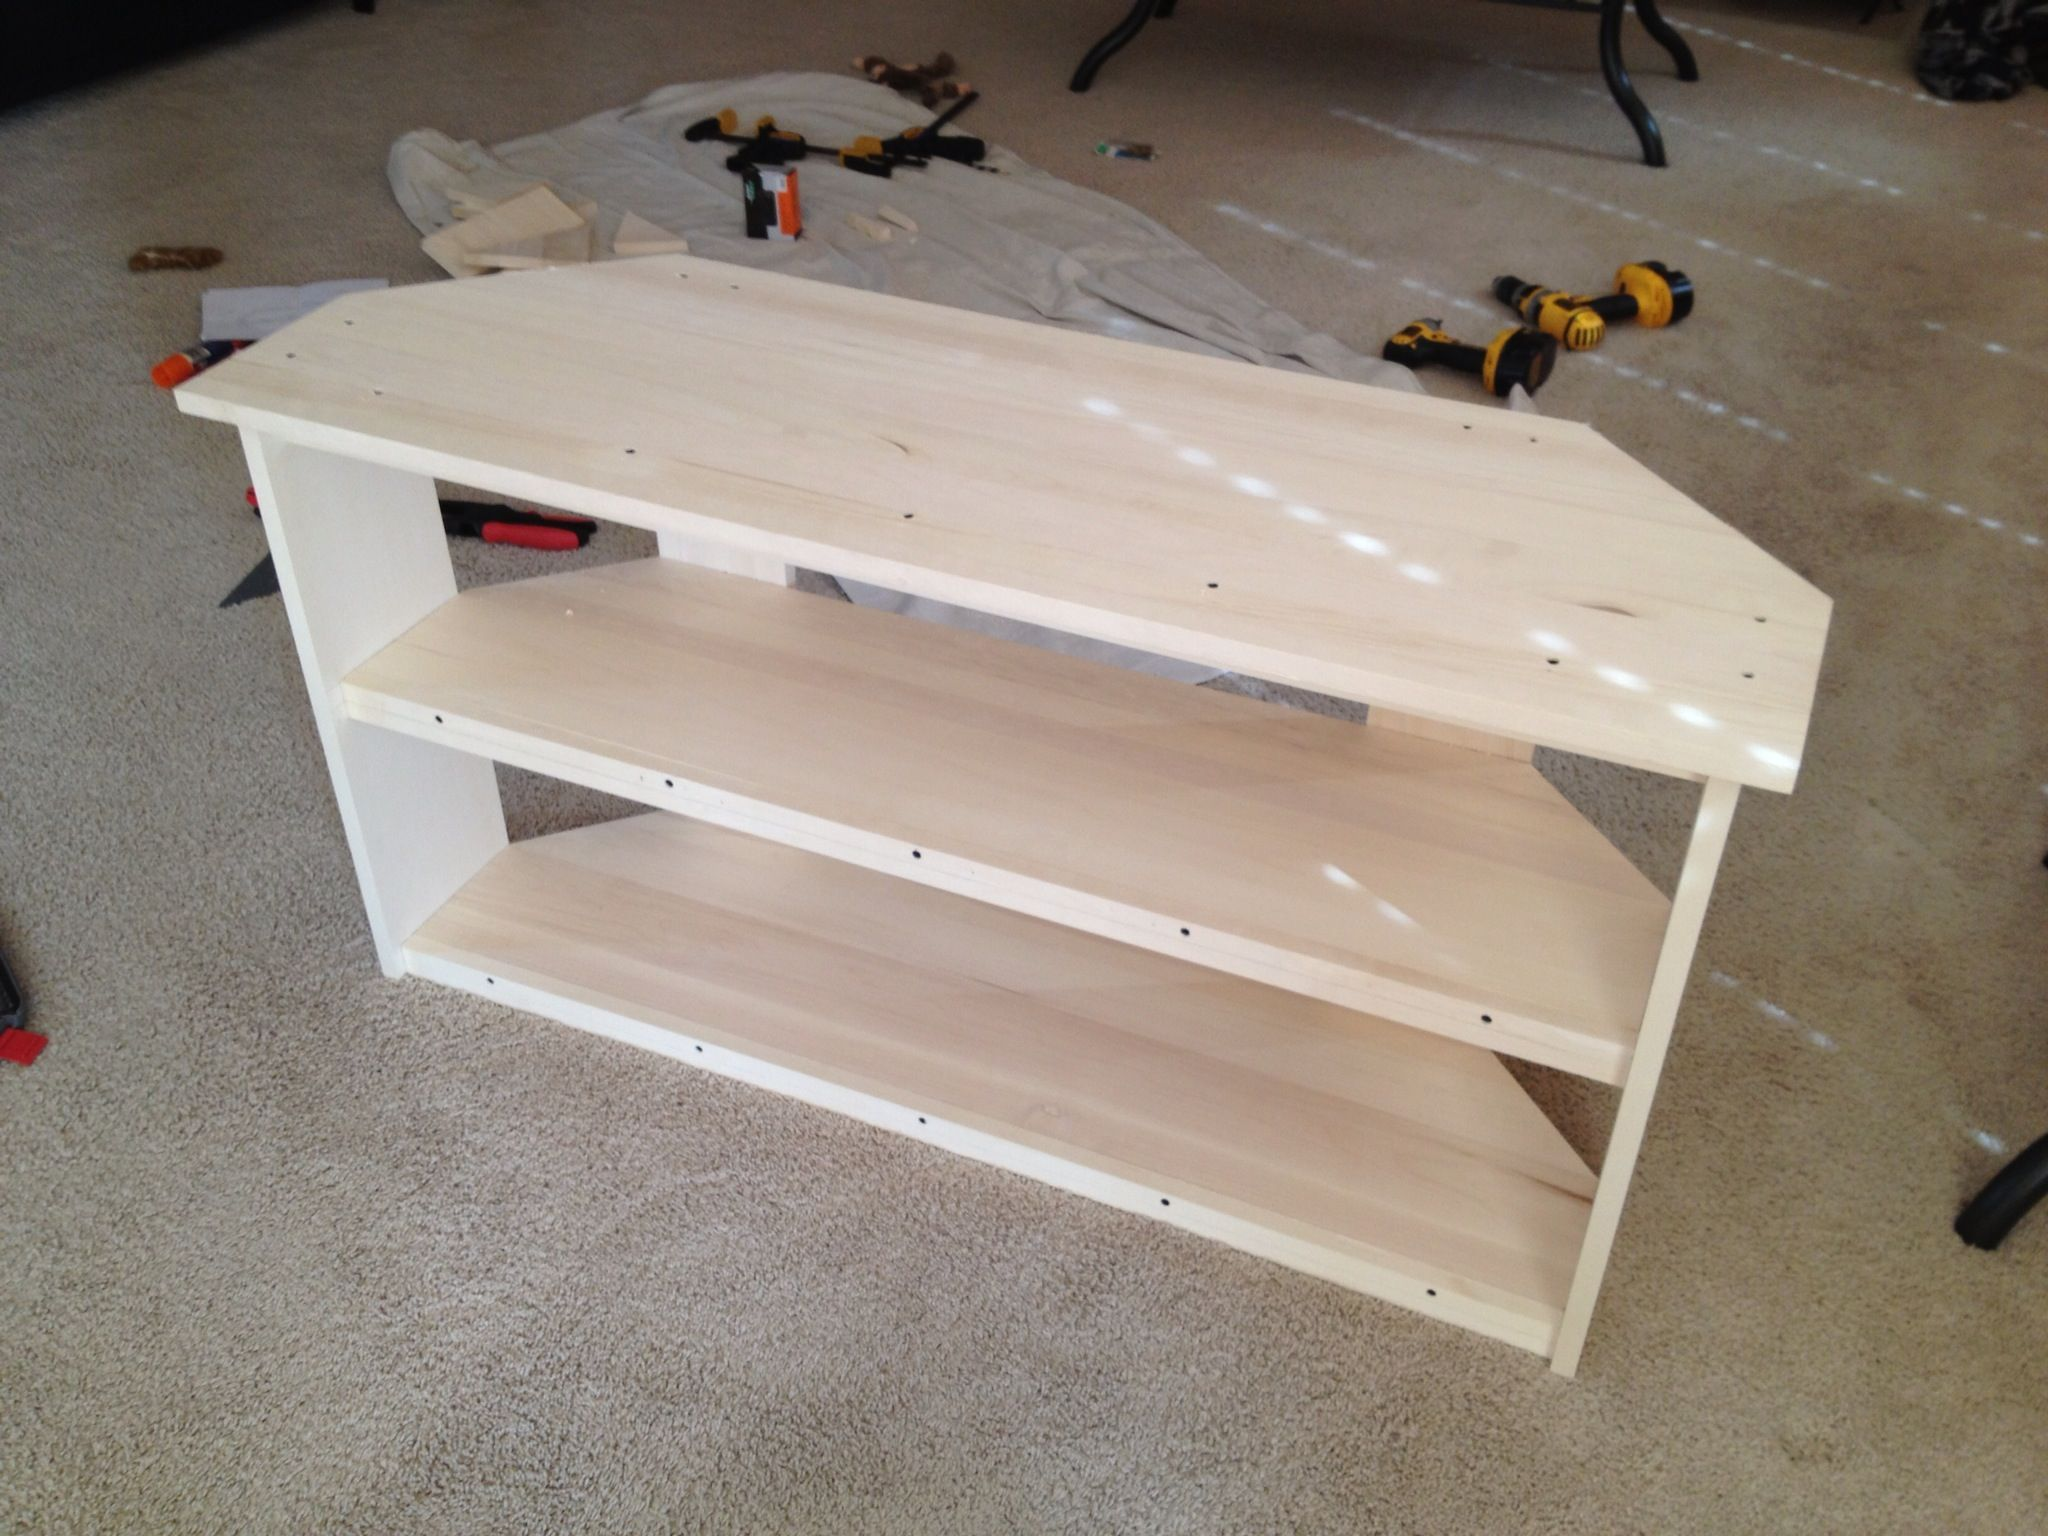 Home shop live tv stands chunky stretch tv stand - Just Cant Buy A Corner Tv Stand Made Like This For 90 That S The Materials